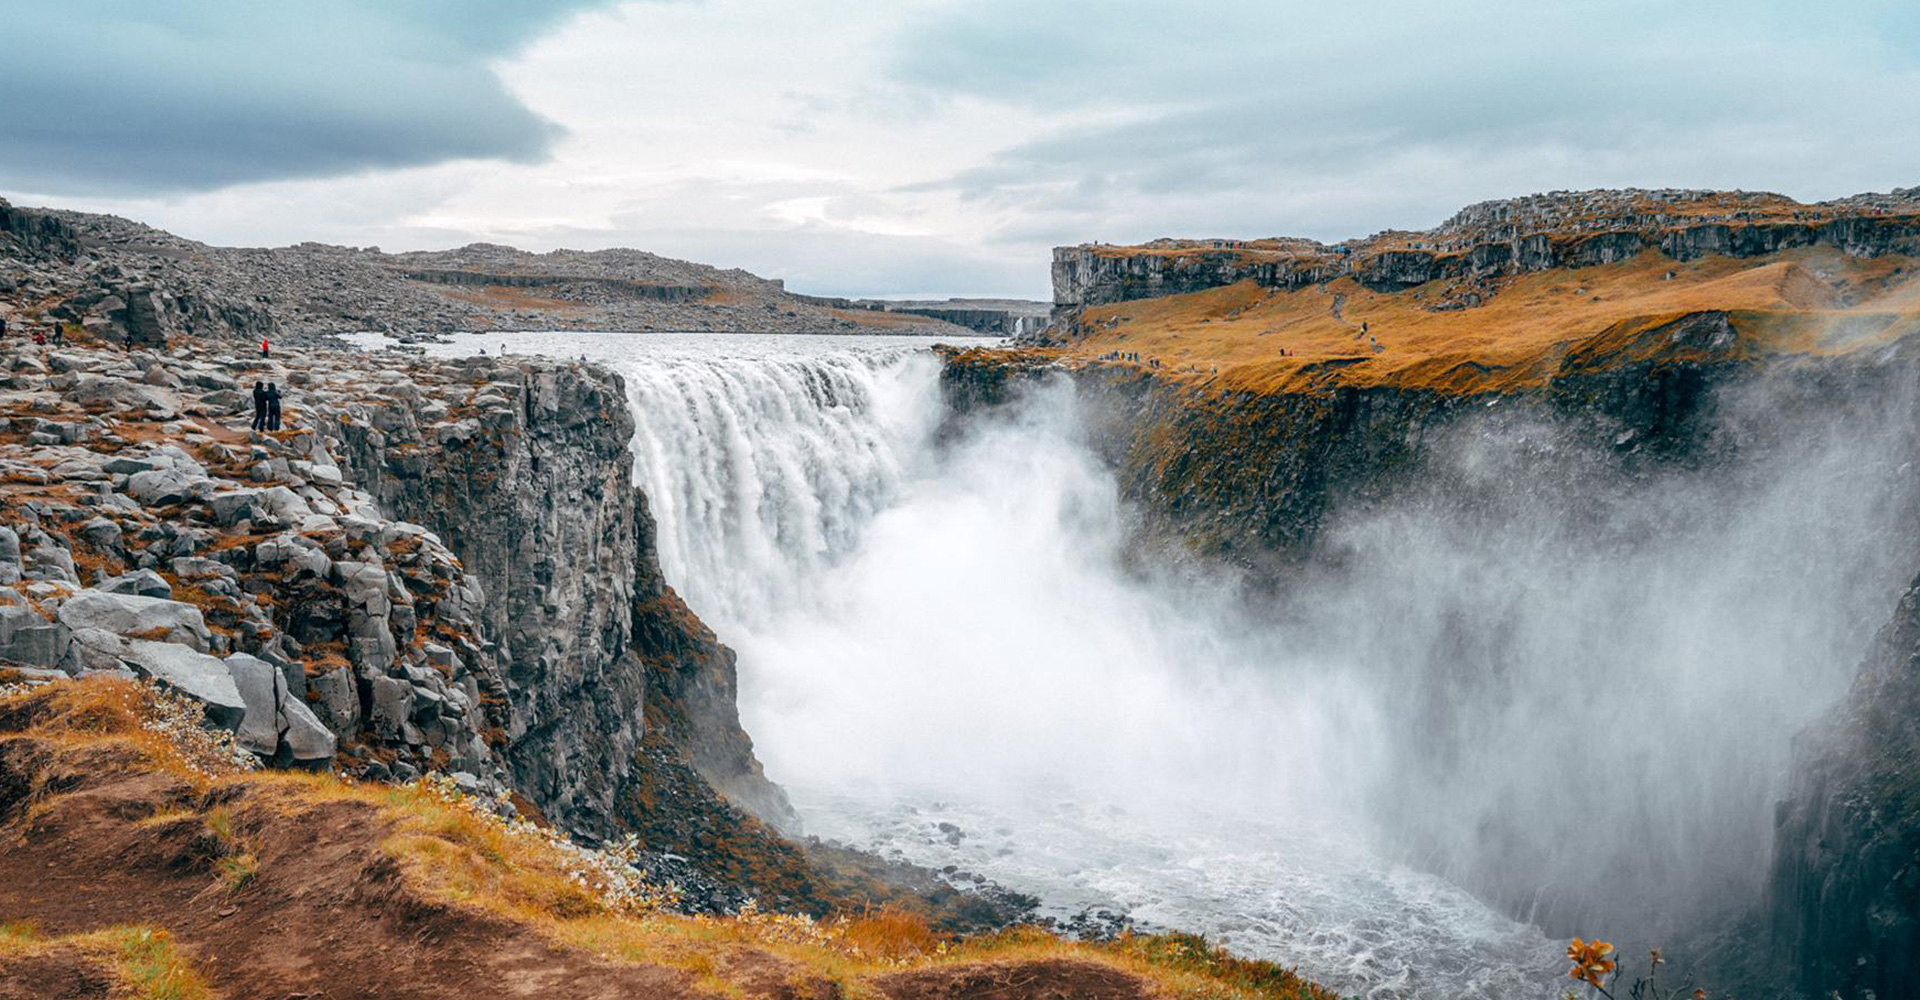 The mighty Dettifoss is one of the most powerful waterfalls on Earth.